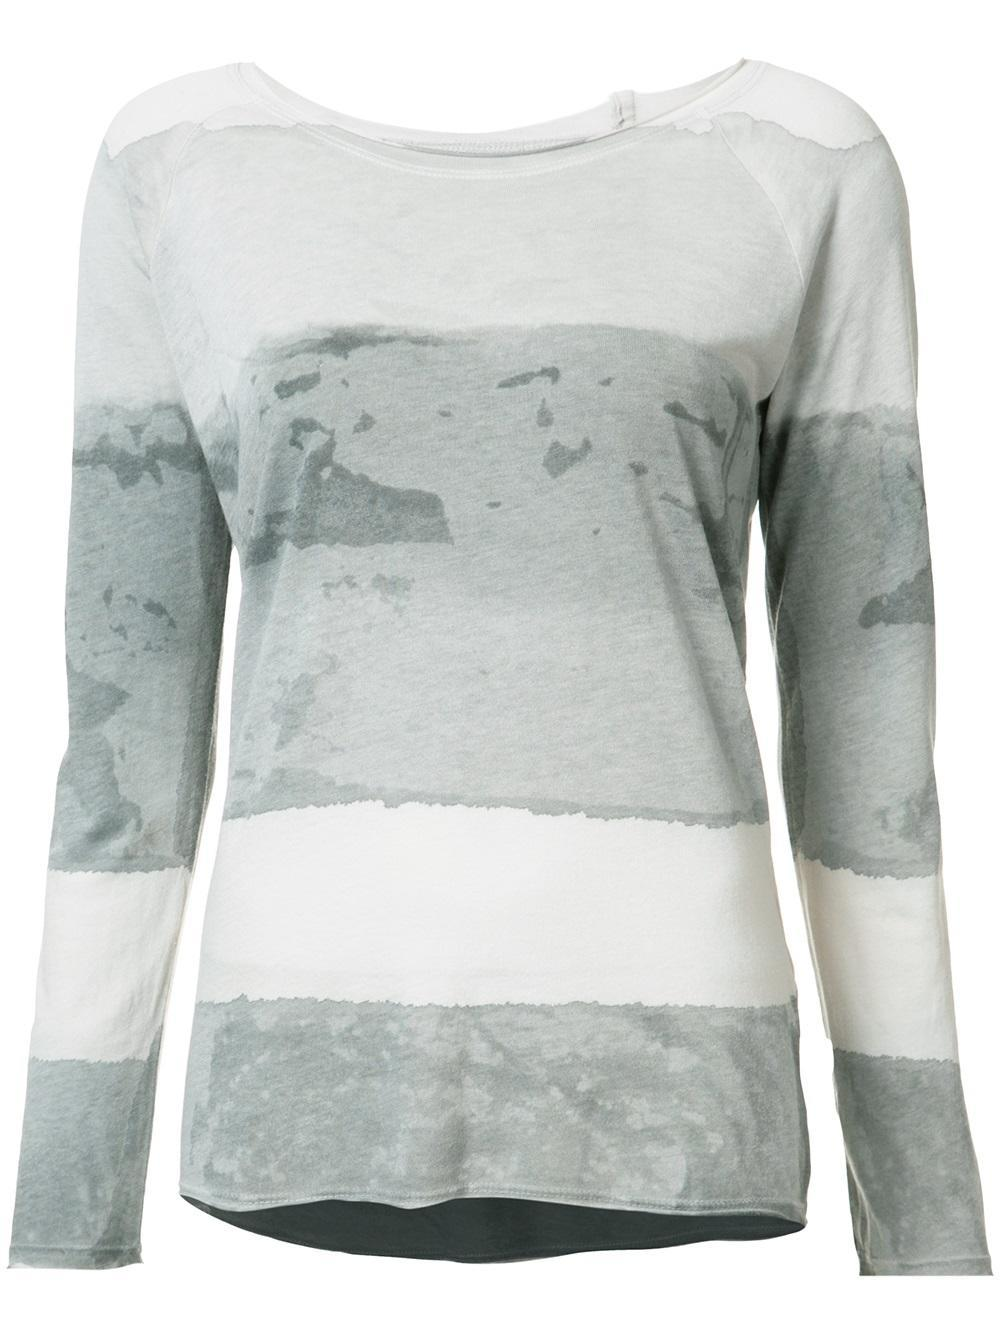 Raquel allegra tie dye print t shirt in gray lyst for Tie dye t shirt printing